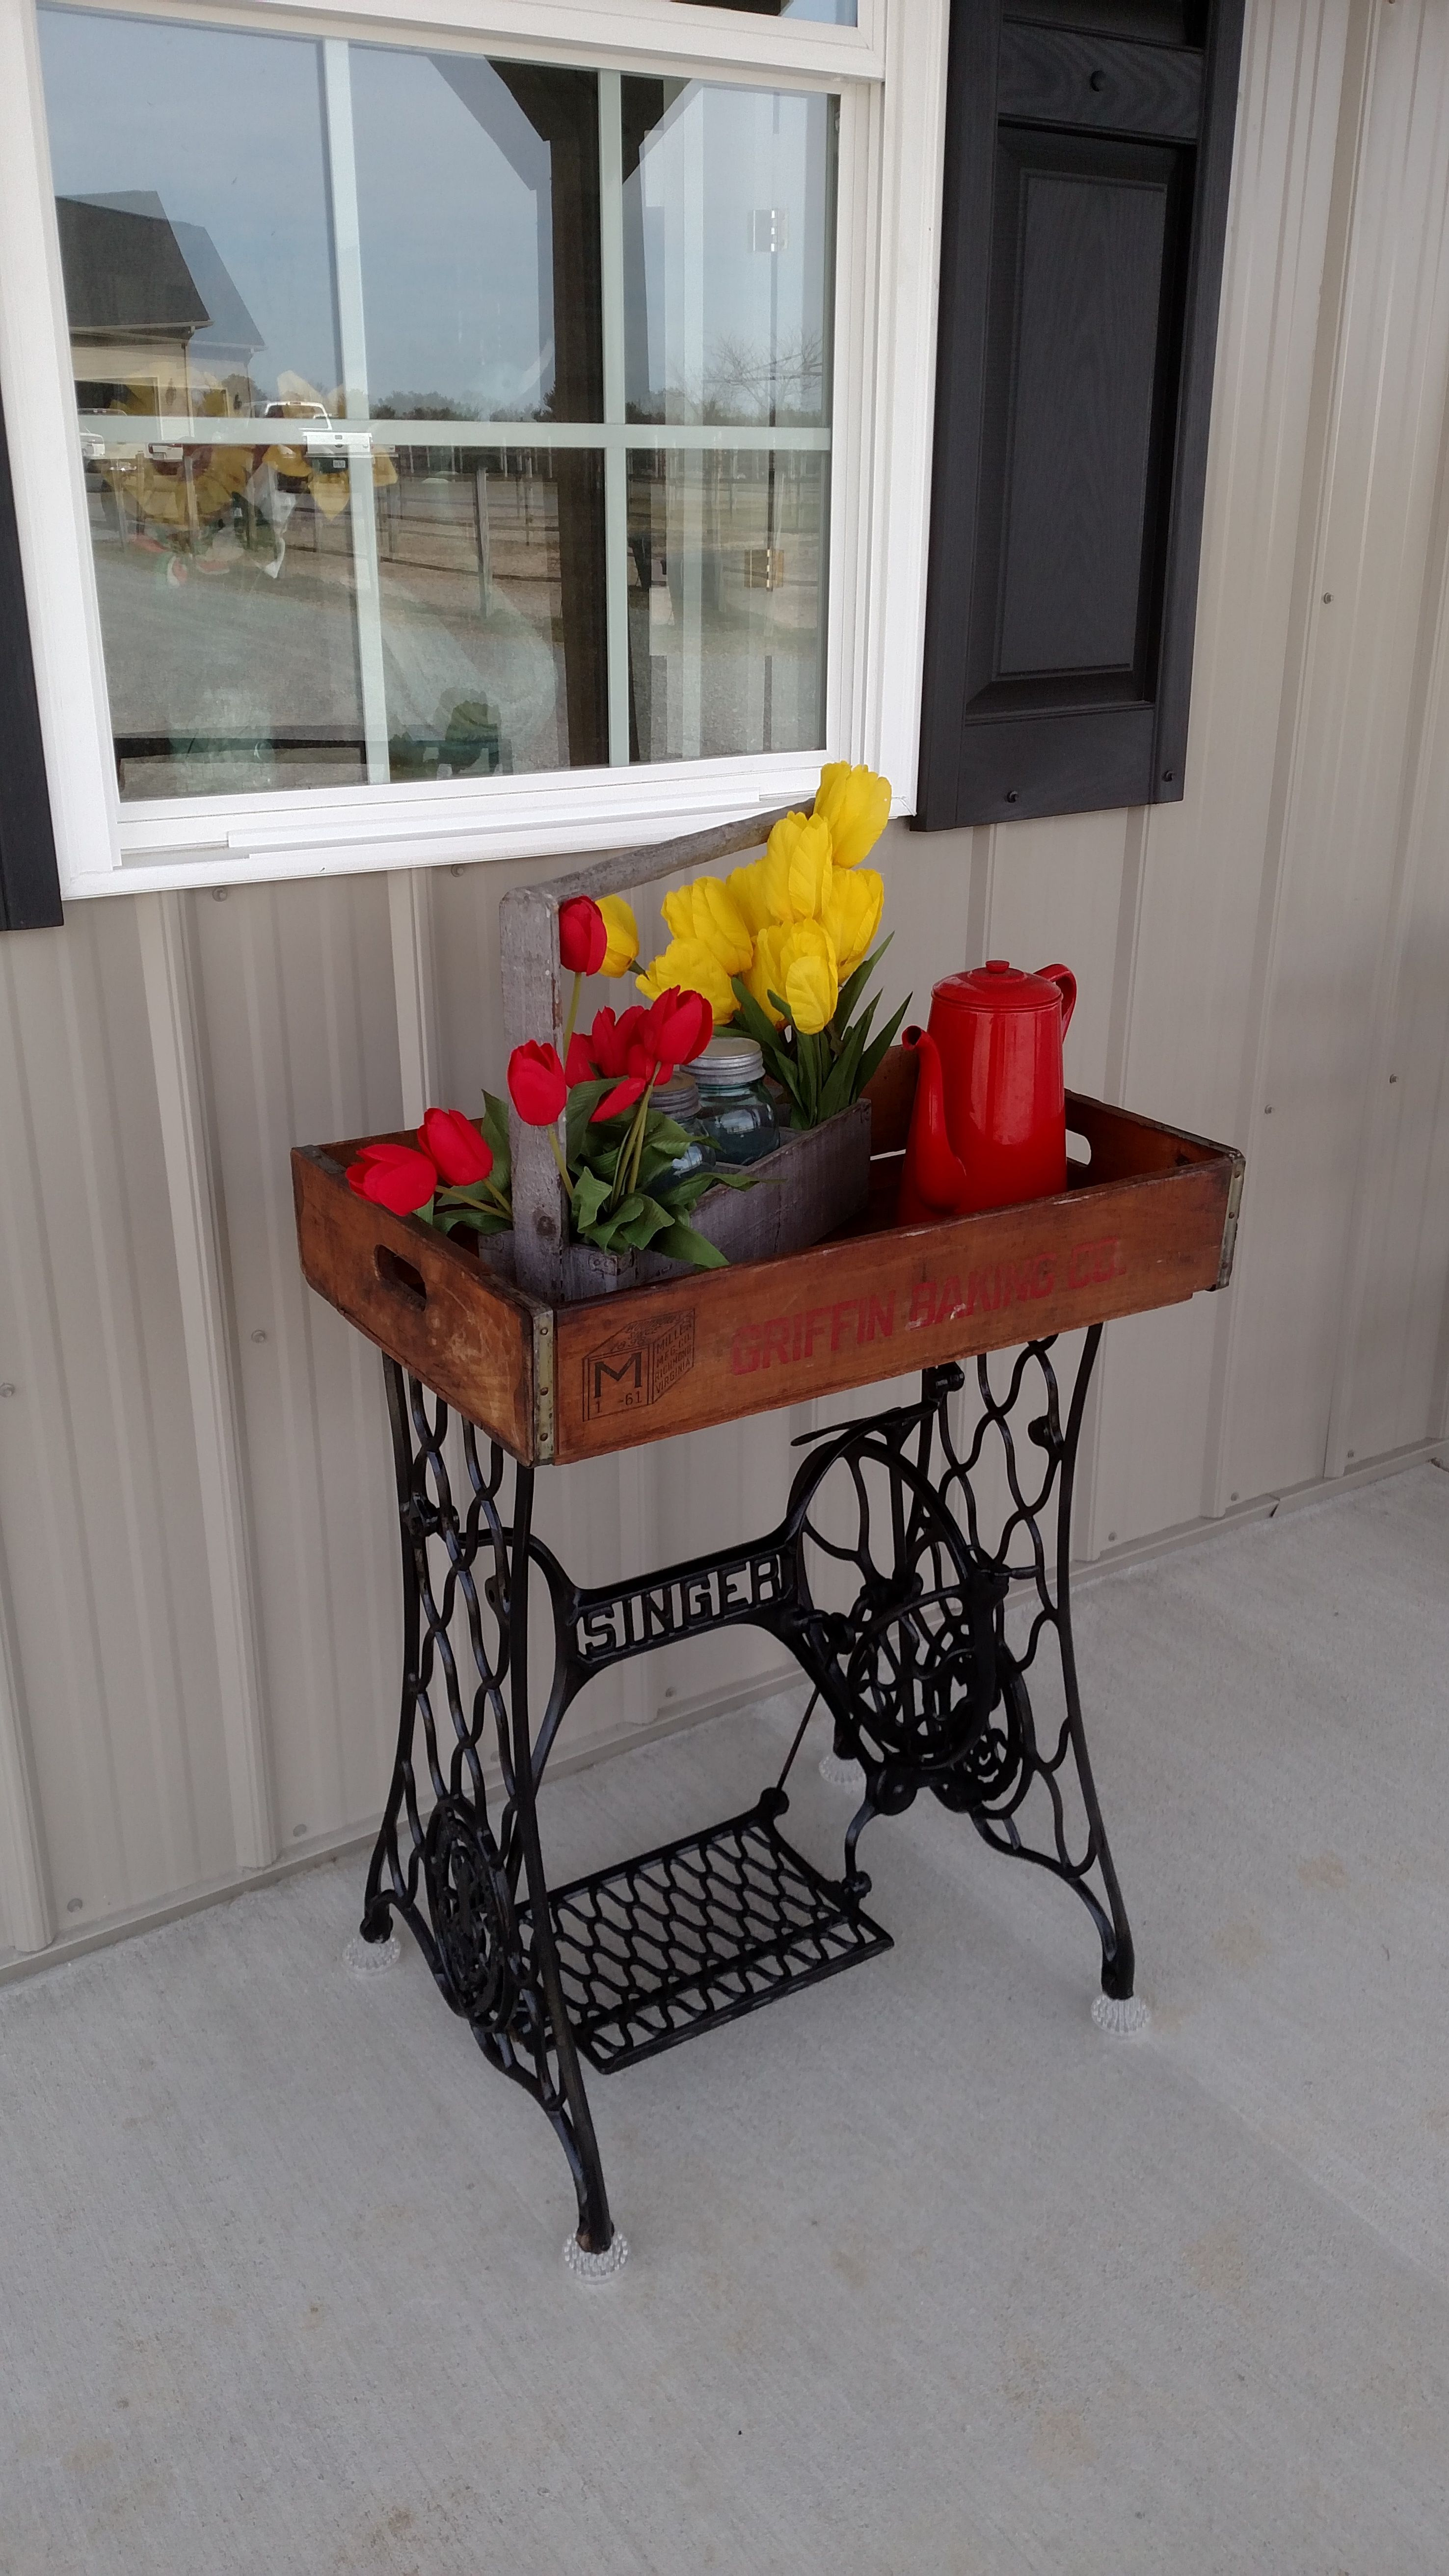 table i made from singer sewing machine base and an old crate crate can be